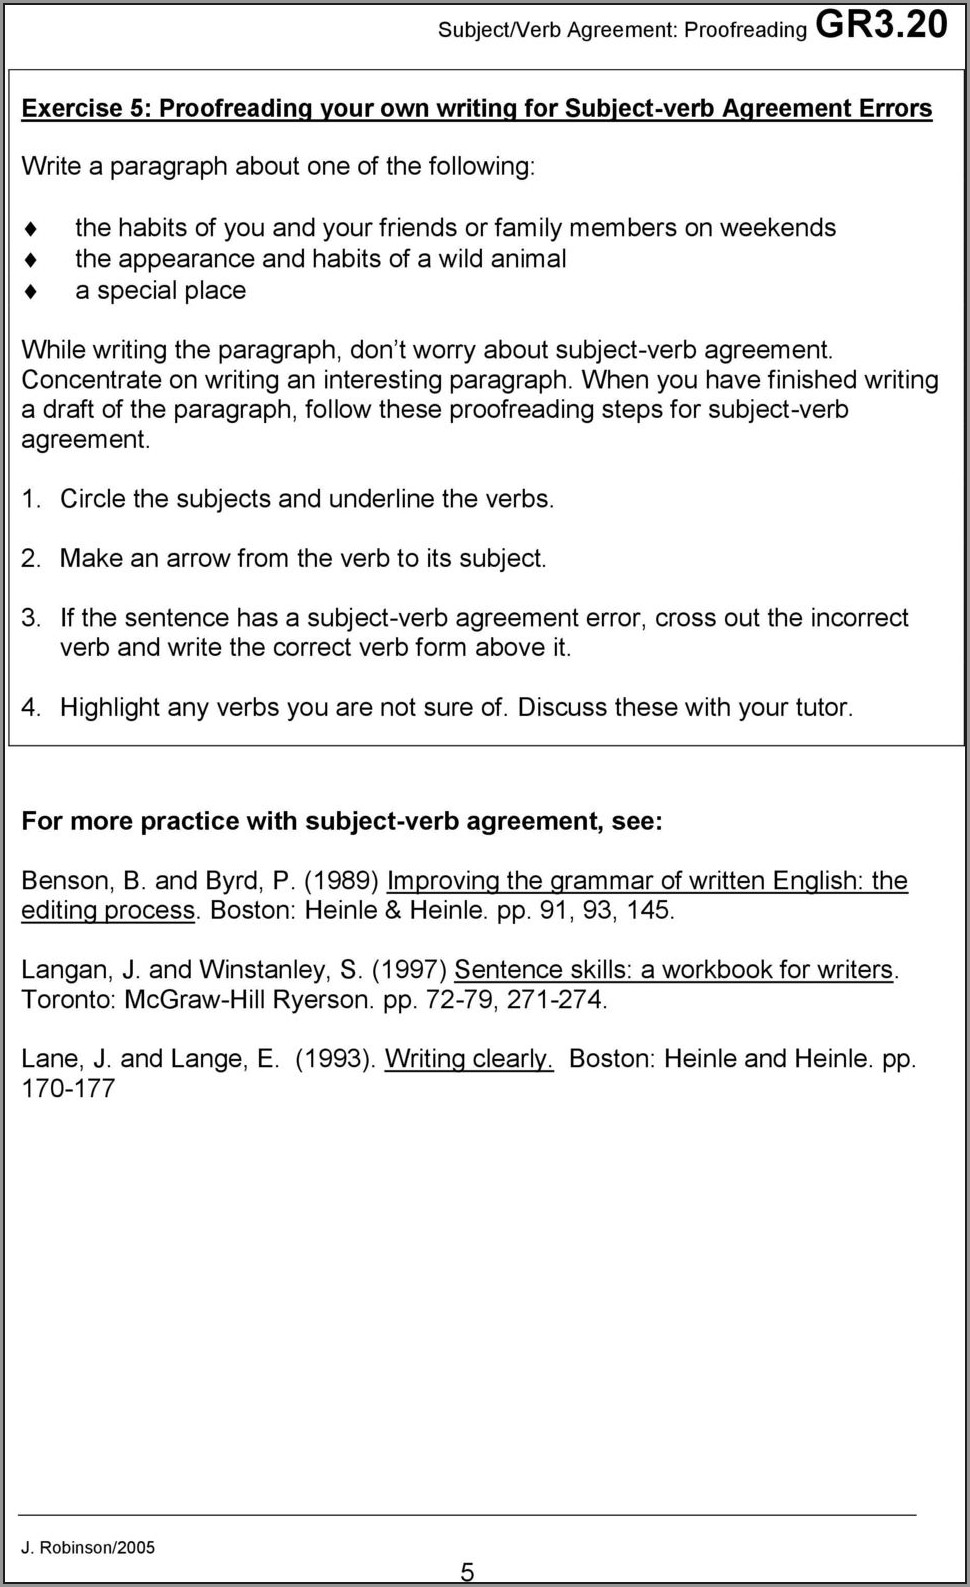 Subject Verb Agreement Paragraph Exercises With Answers Pdf